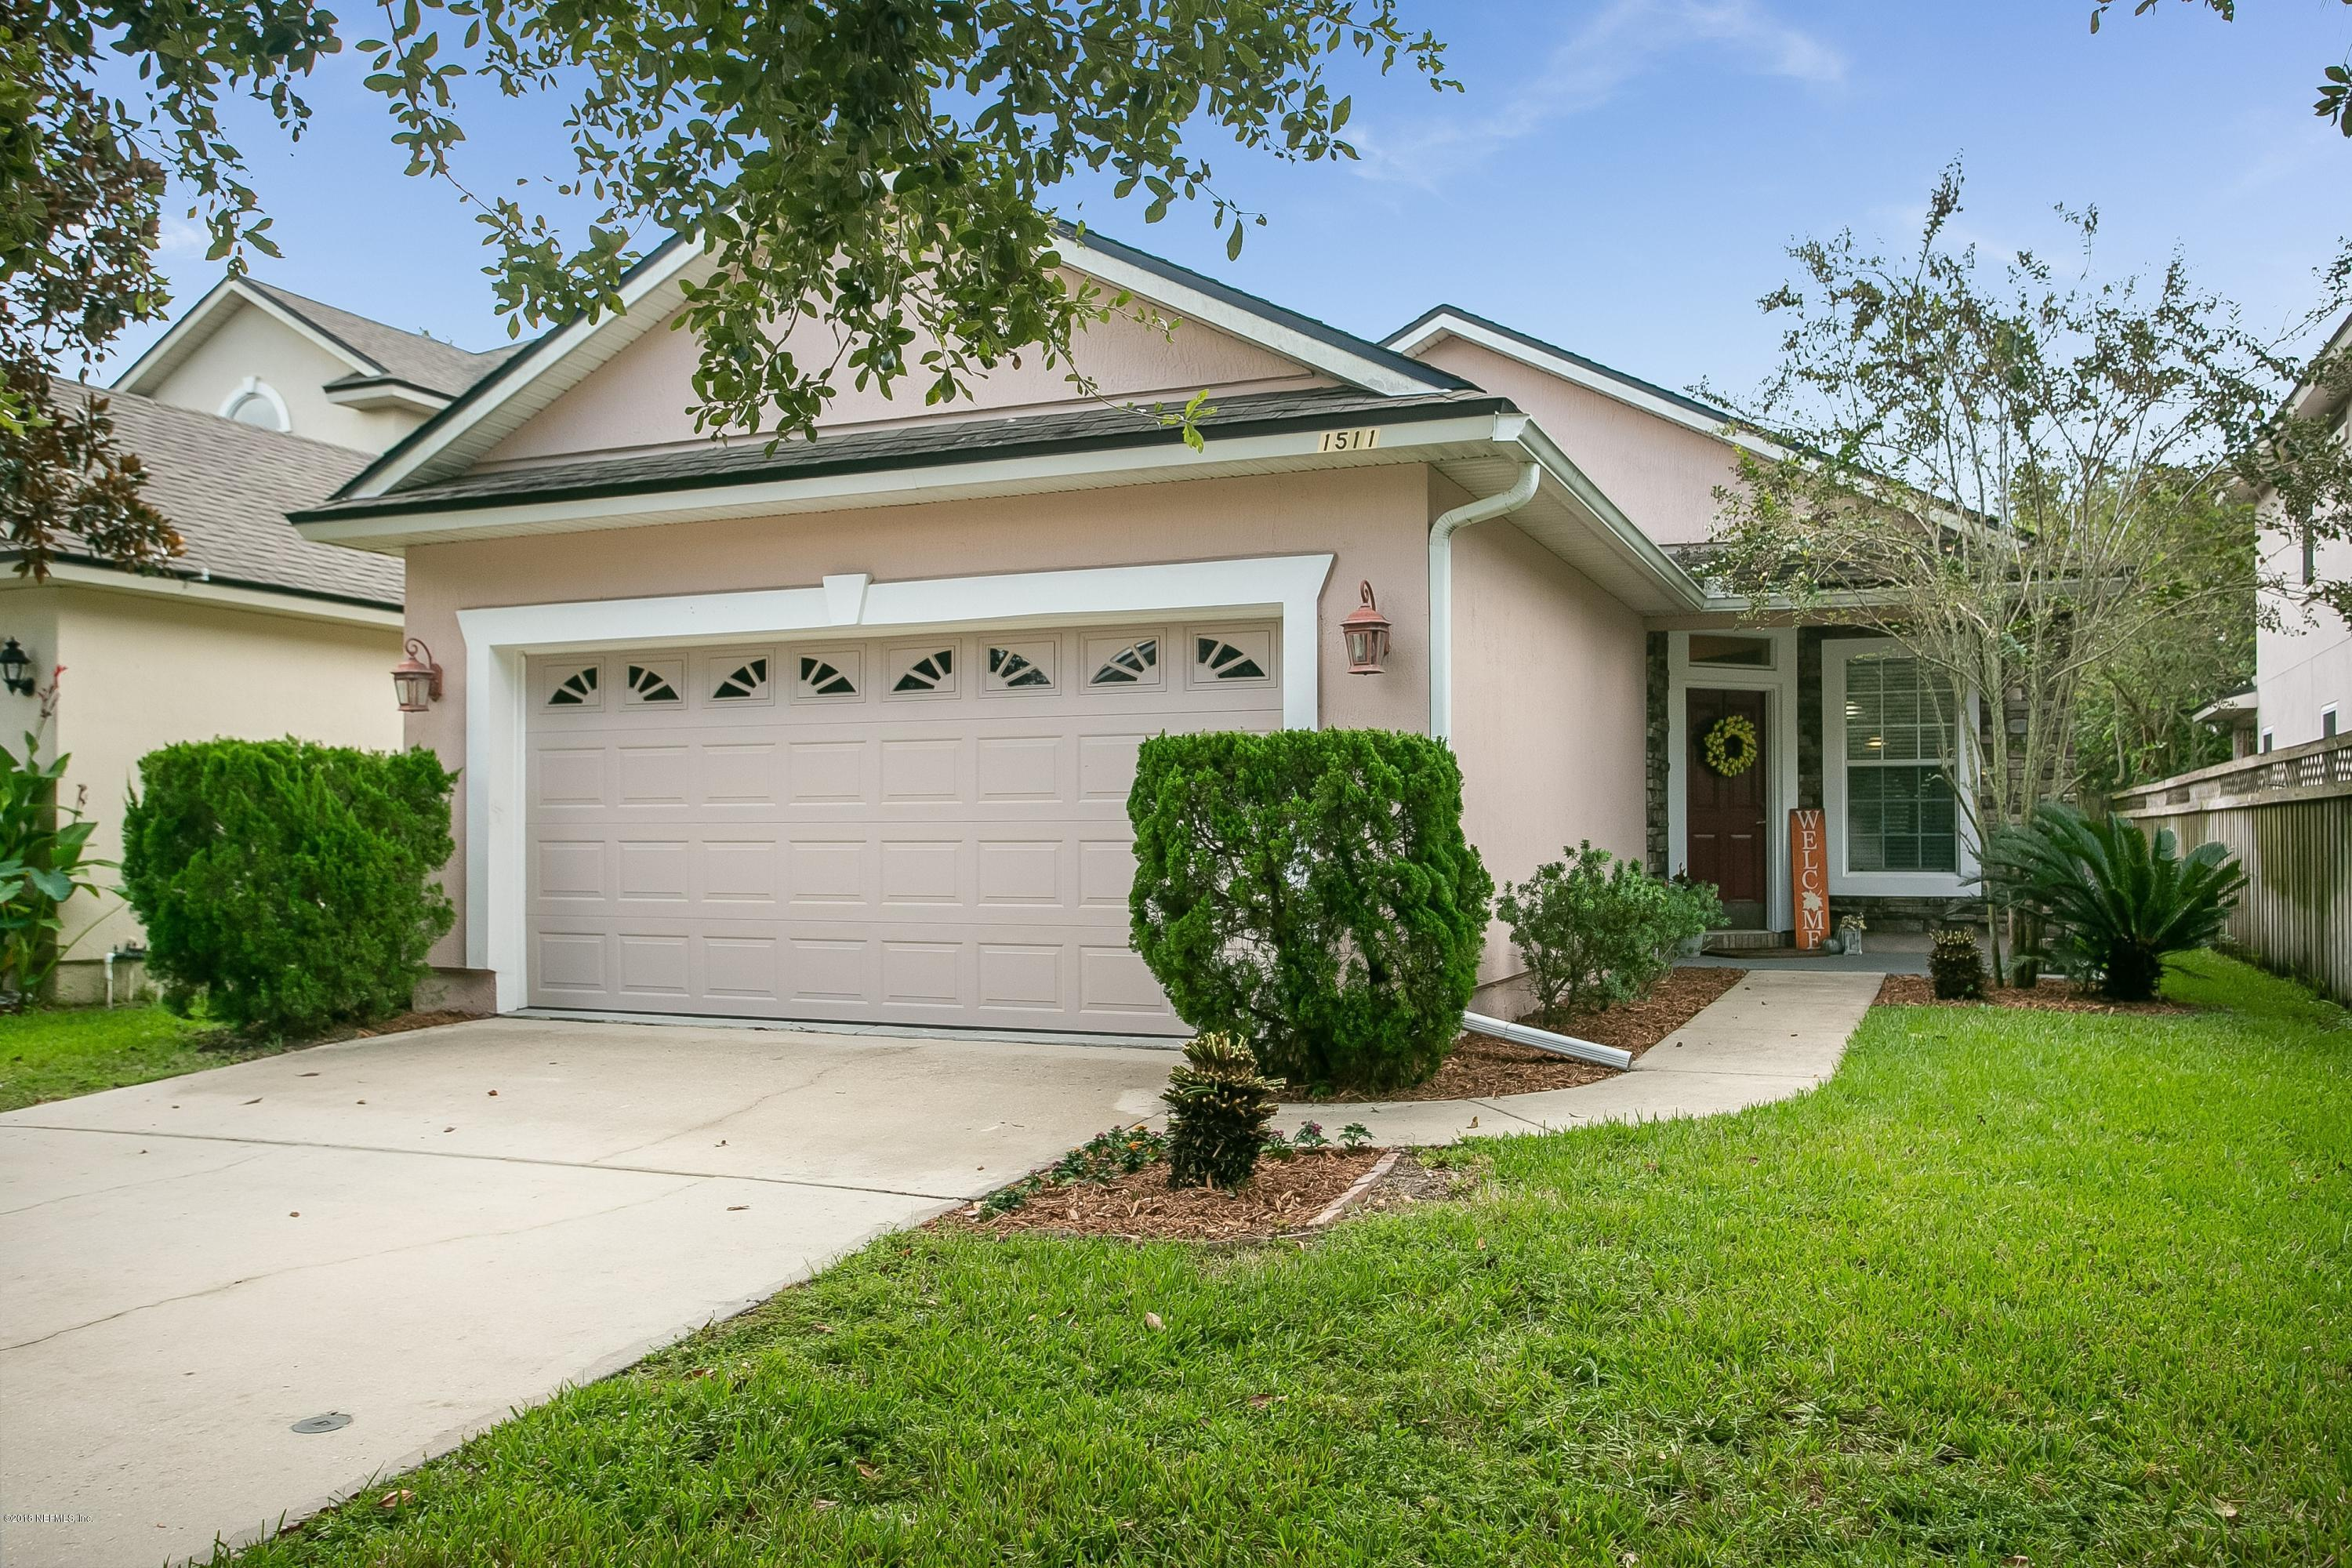 1511 TAWNY MARSH, ST AUGUSTINE, FLORIDA 32092, 3 Bedrooms Bedrooms, ,2 BathroomsBathrooms,Residential - single family,For sale,TAWNY MARSH,959380